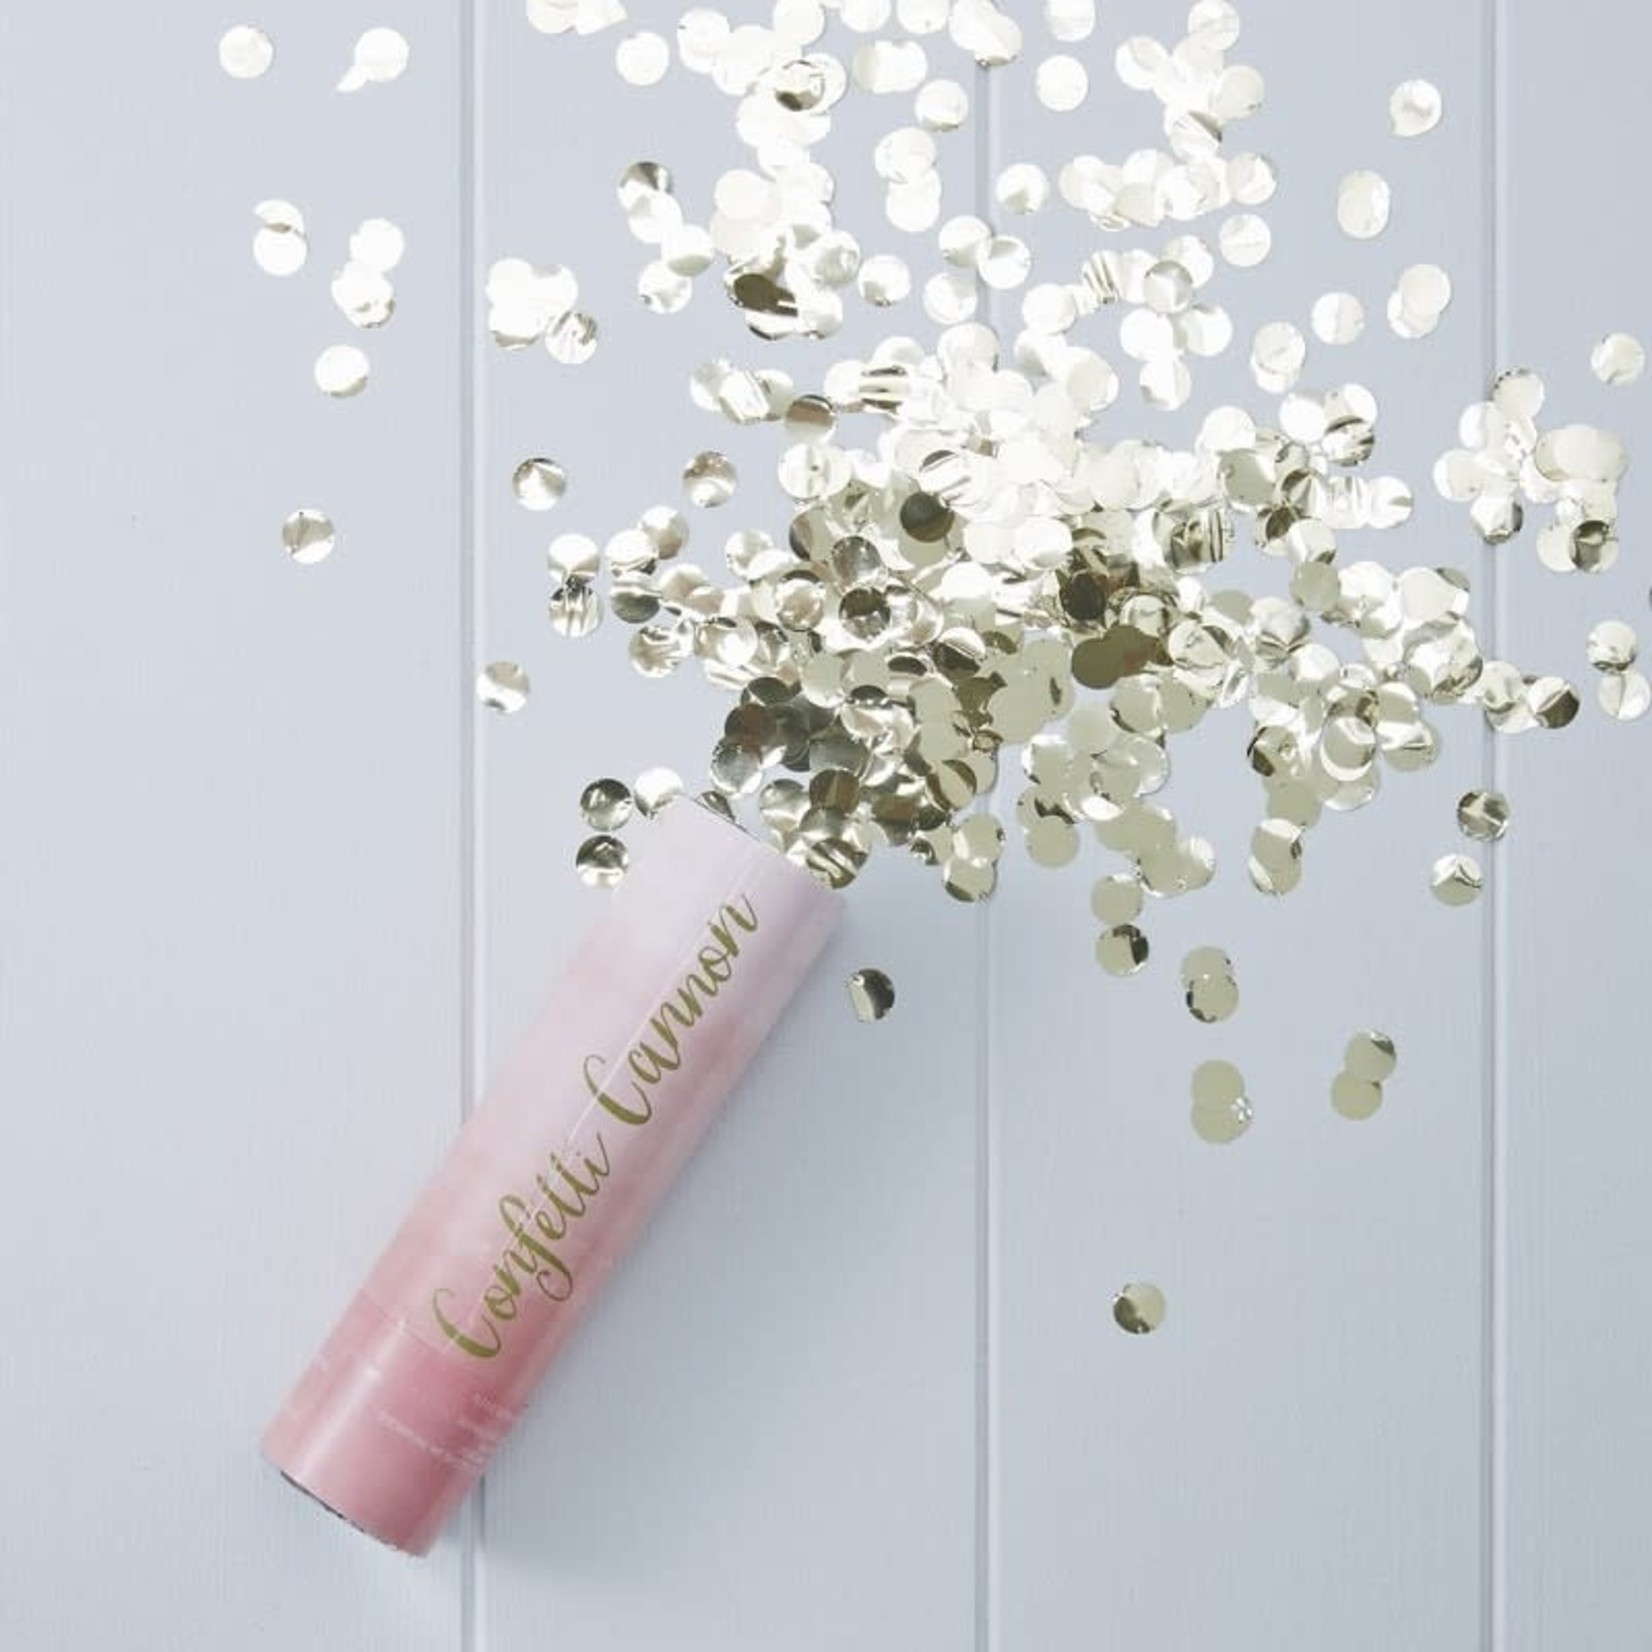 Cannon Shooter Pink Confetti